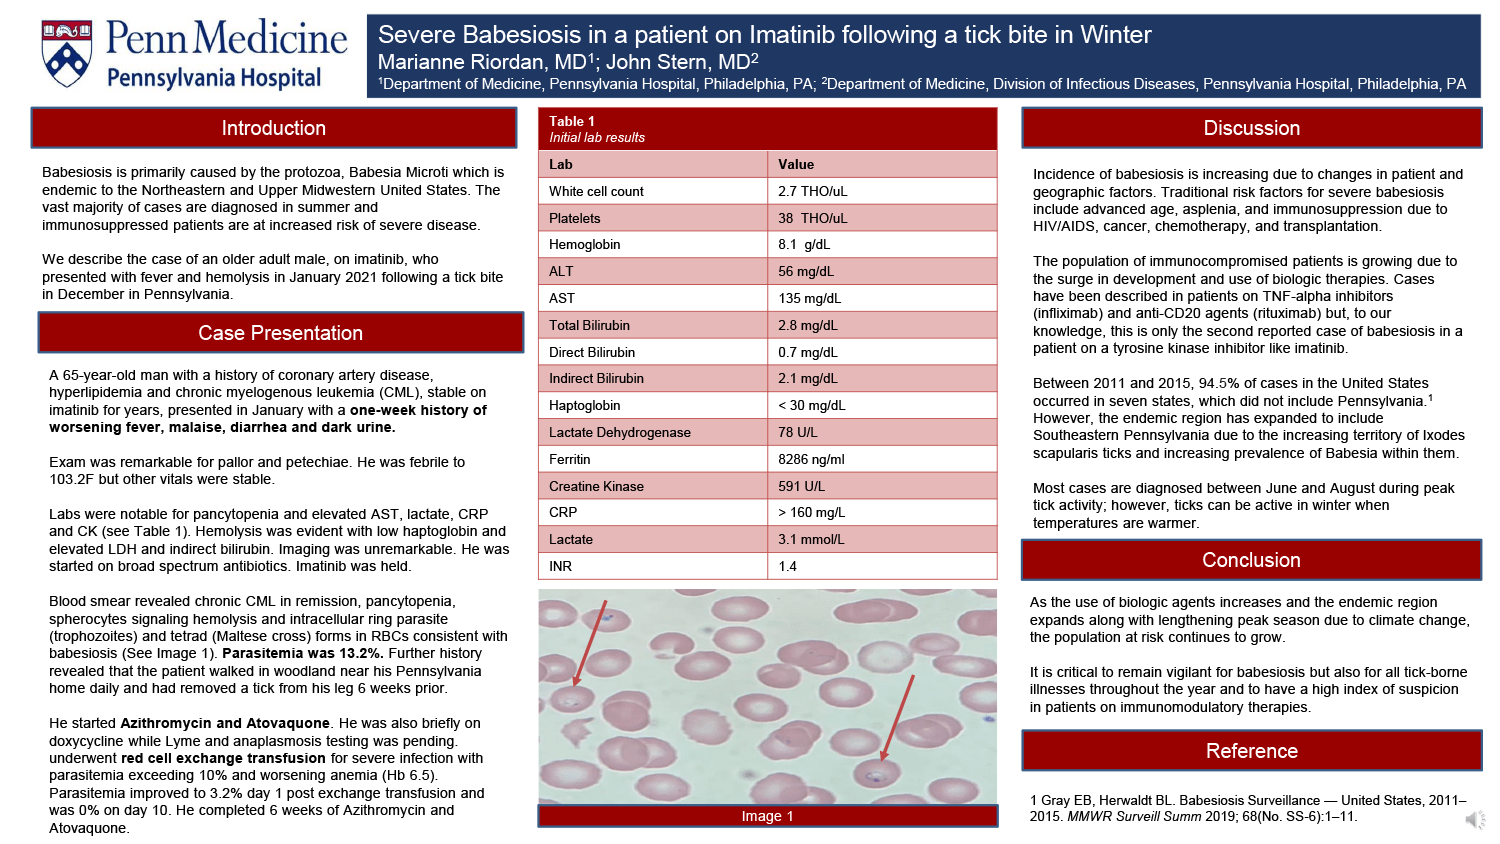 Marianne Riordan - PAS-75-Severe-Babesiosis-in-a-patient-on-Imatinib-following-a-tick-bite-in-December